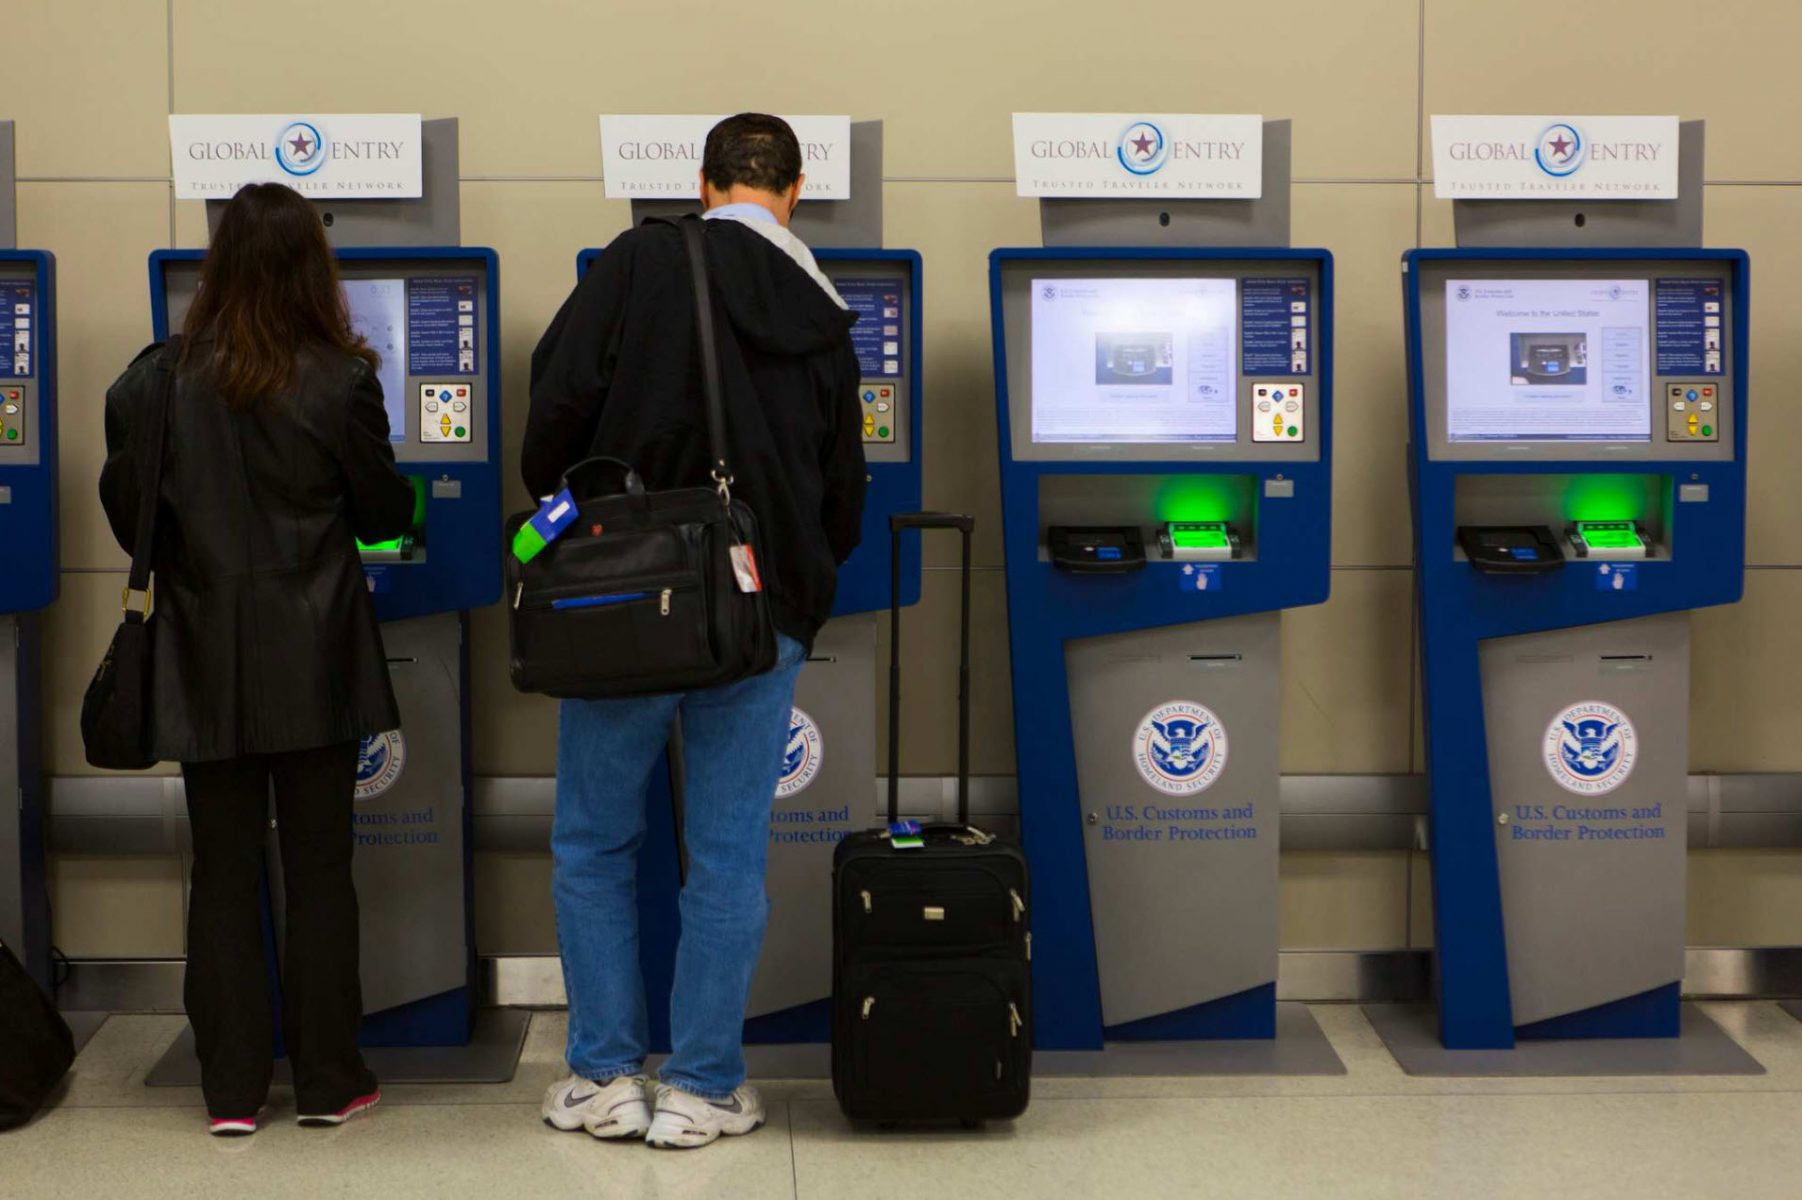 ReGift Your Global Entry Credit Card Benefit (Worth $100!) – Check The Credit Cards In Your Wallet